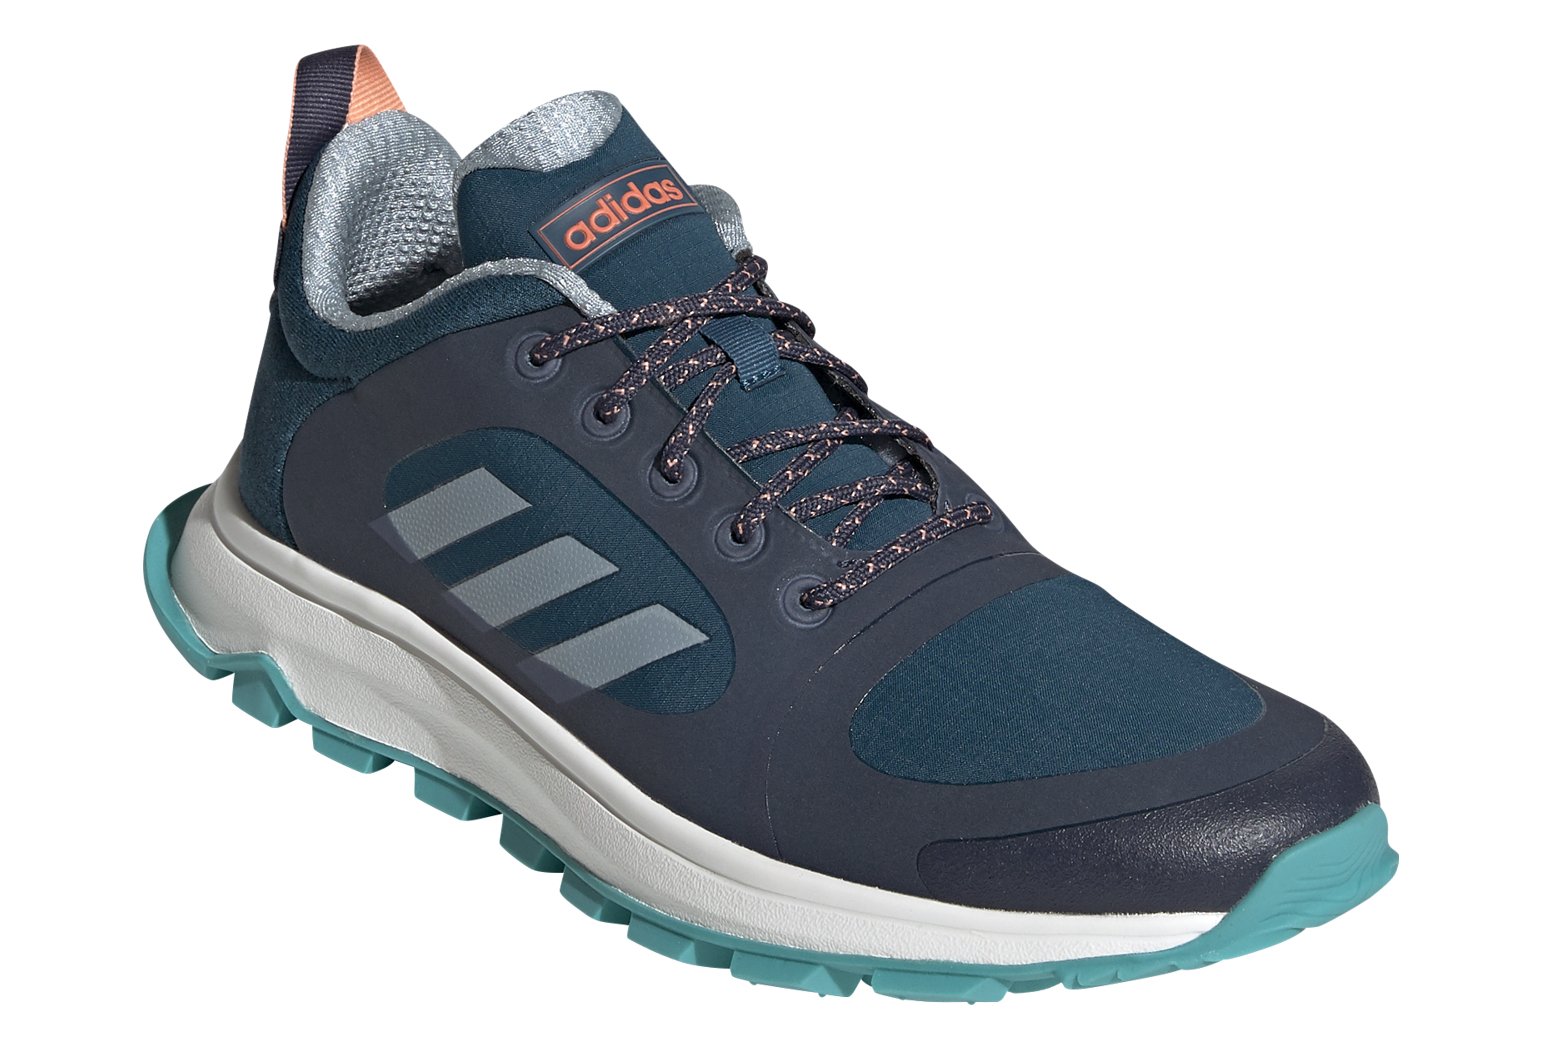 Chaussures Femme Response Adidas Trail X nvNwy8Om0